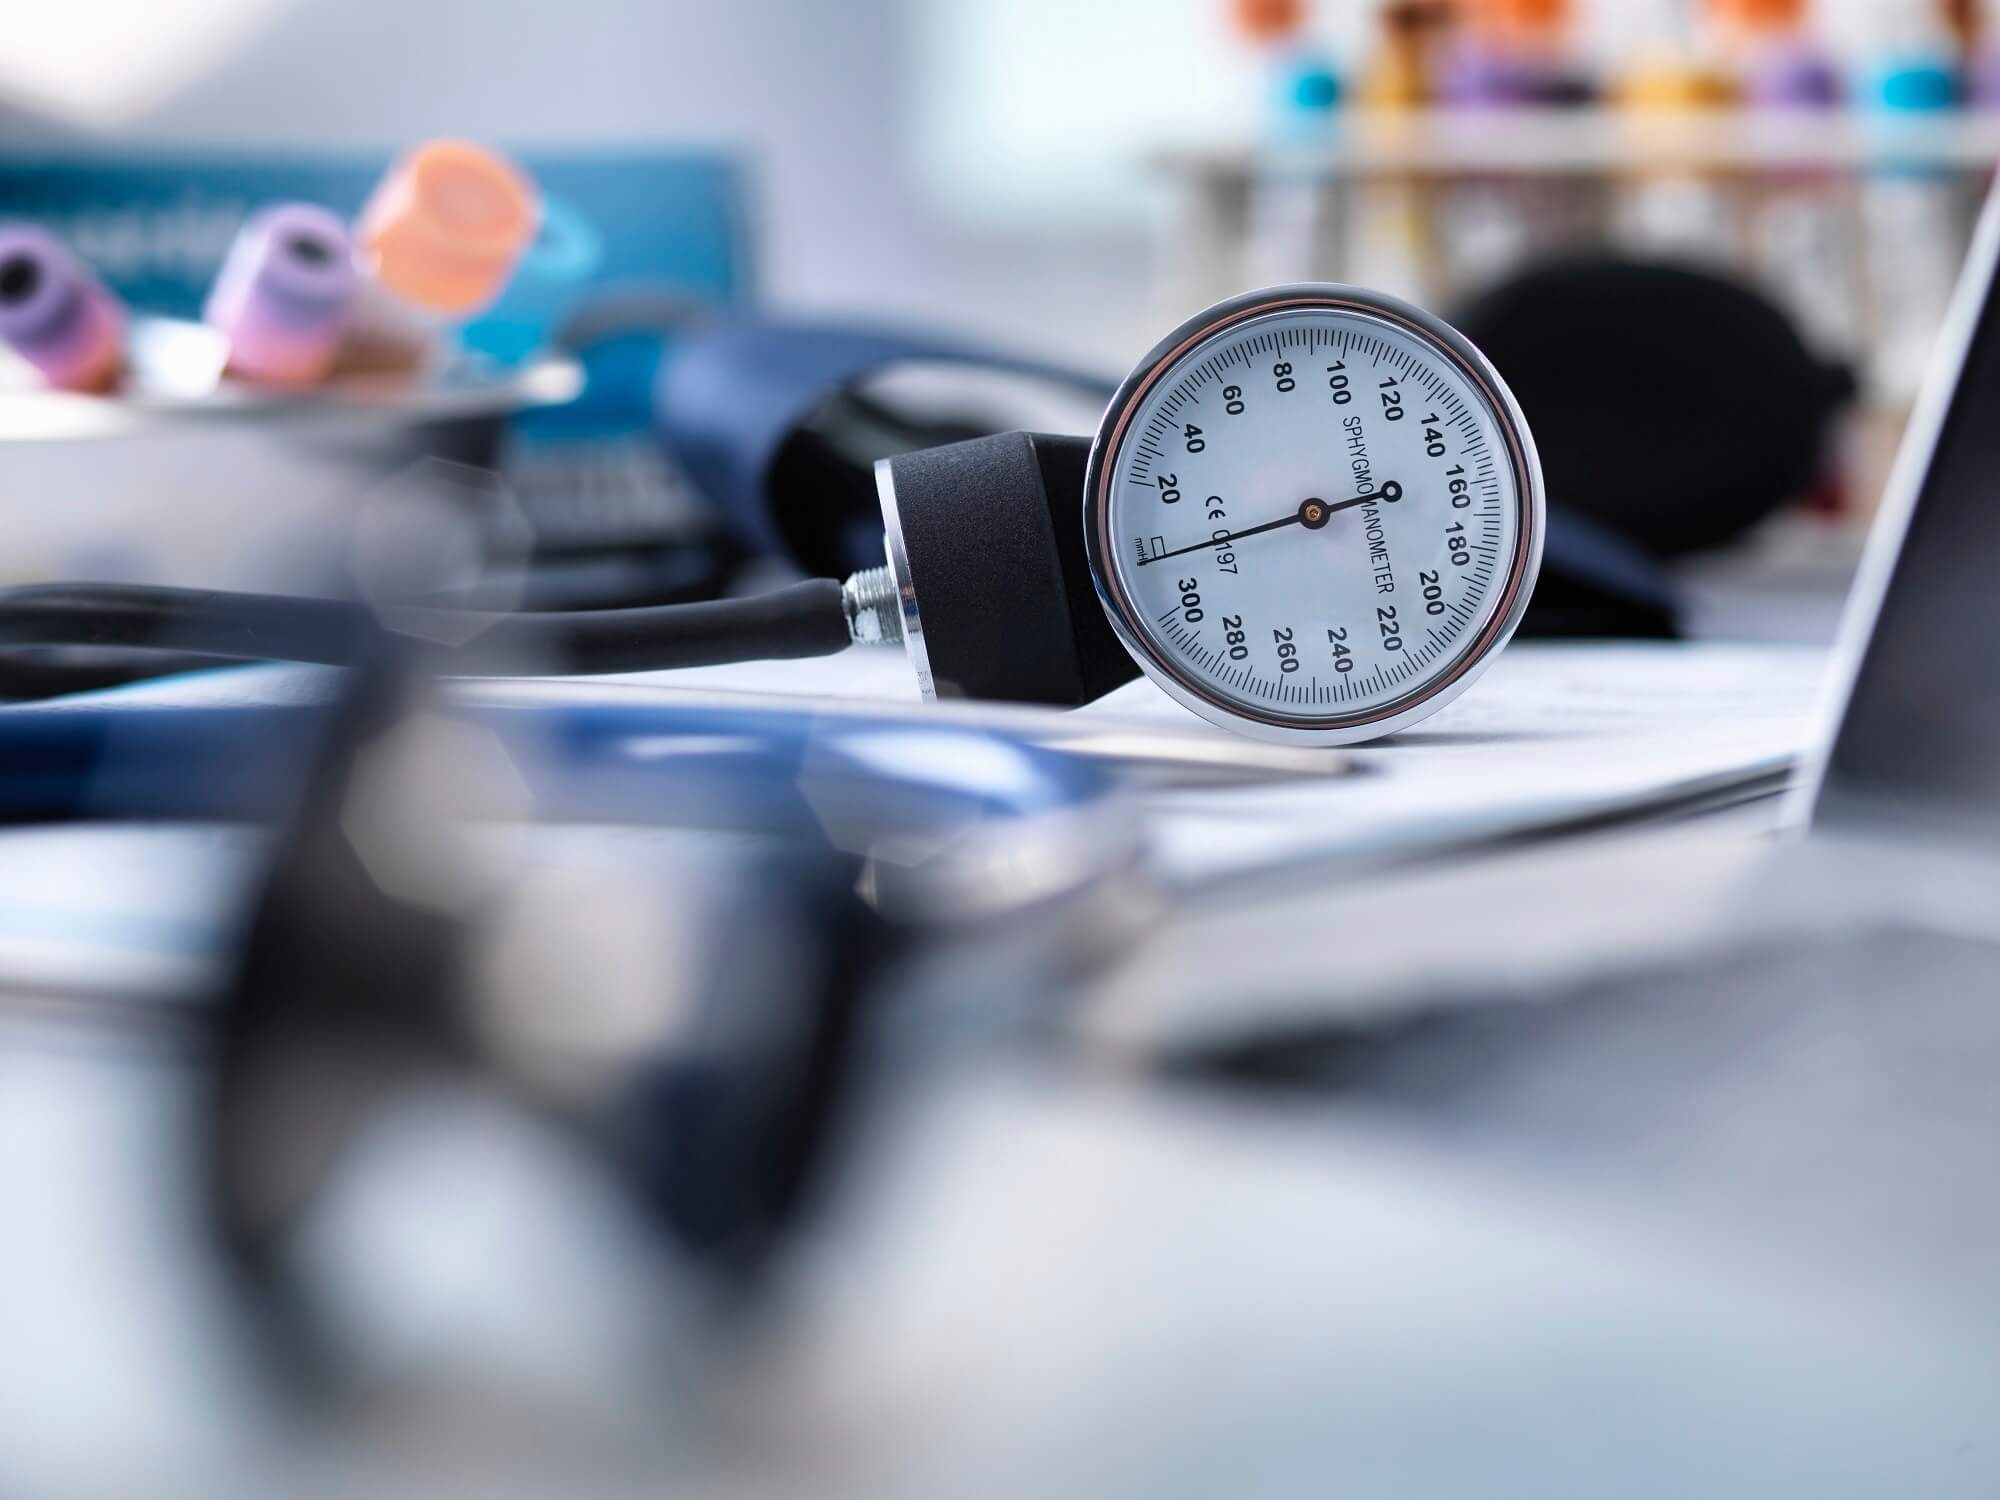 Edentulism Tied to Greater Risk for High BP After Menopause